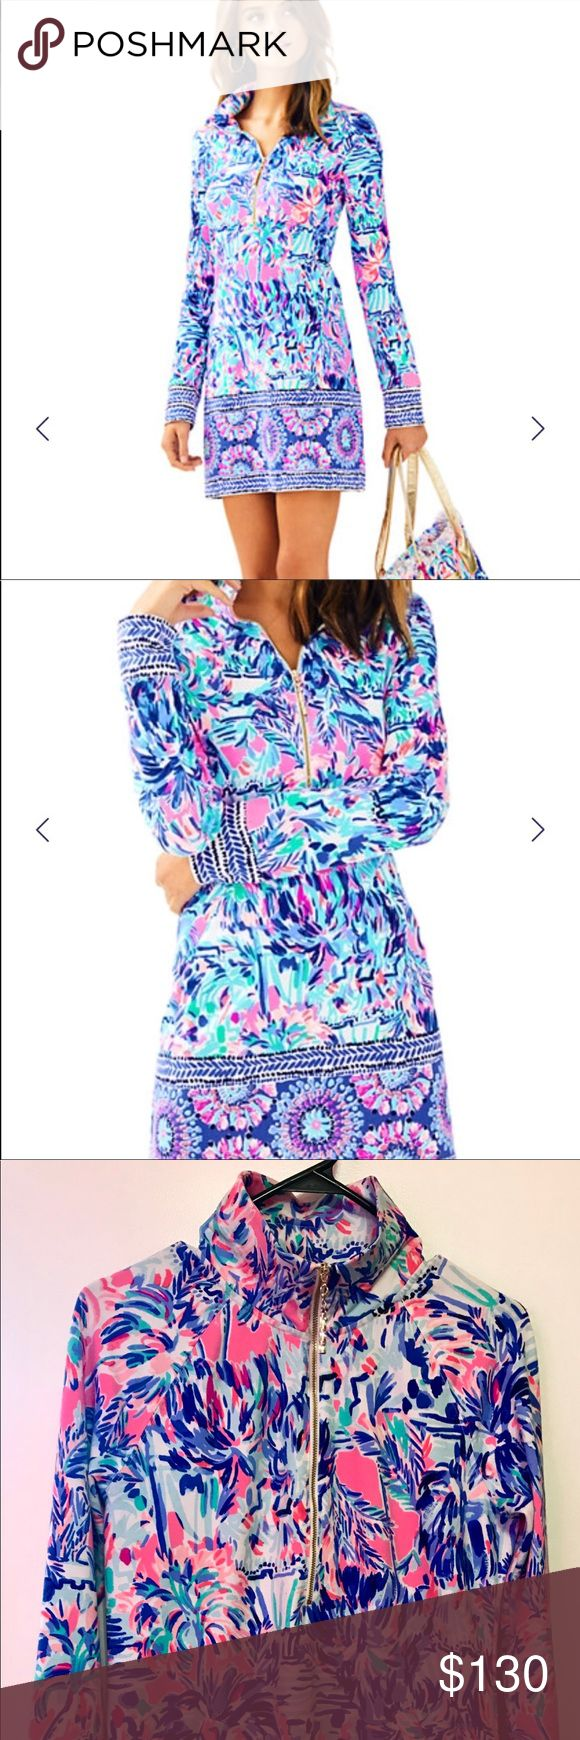 1298 best My Posh Picks images on Pinterest | Lilly pulitzer, Mini ...